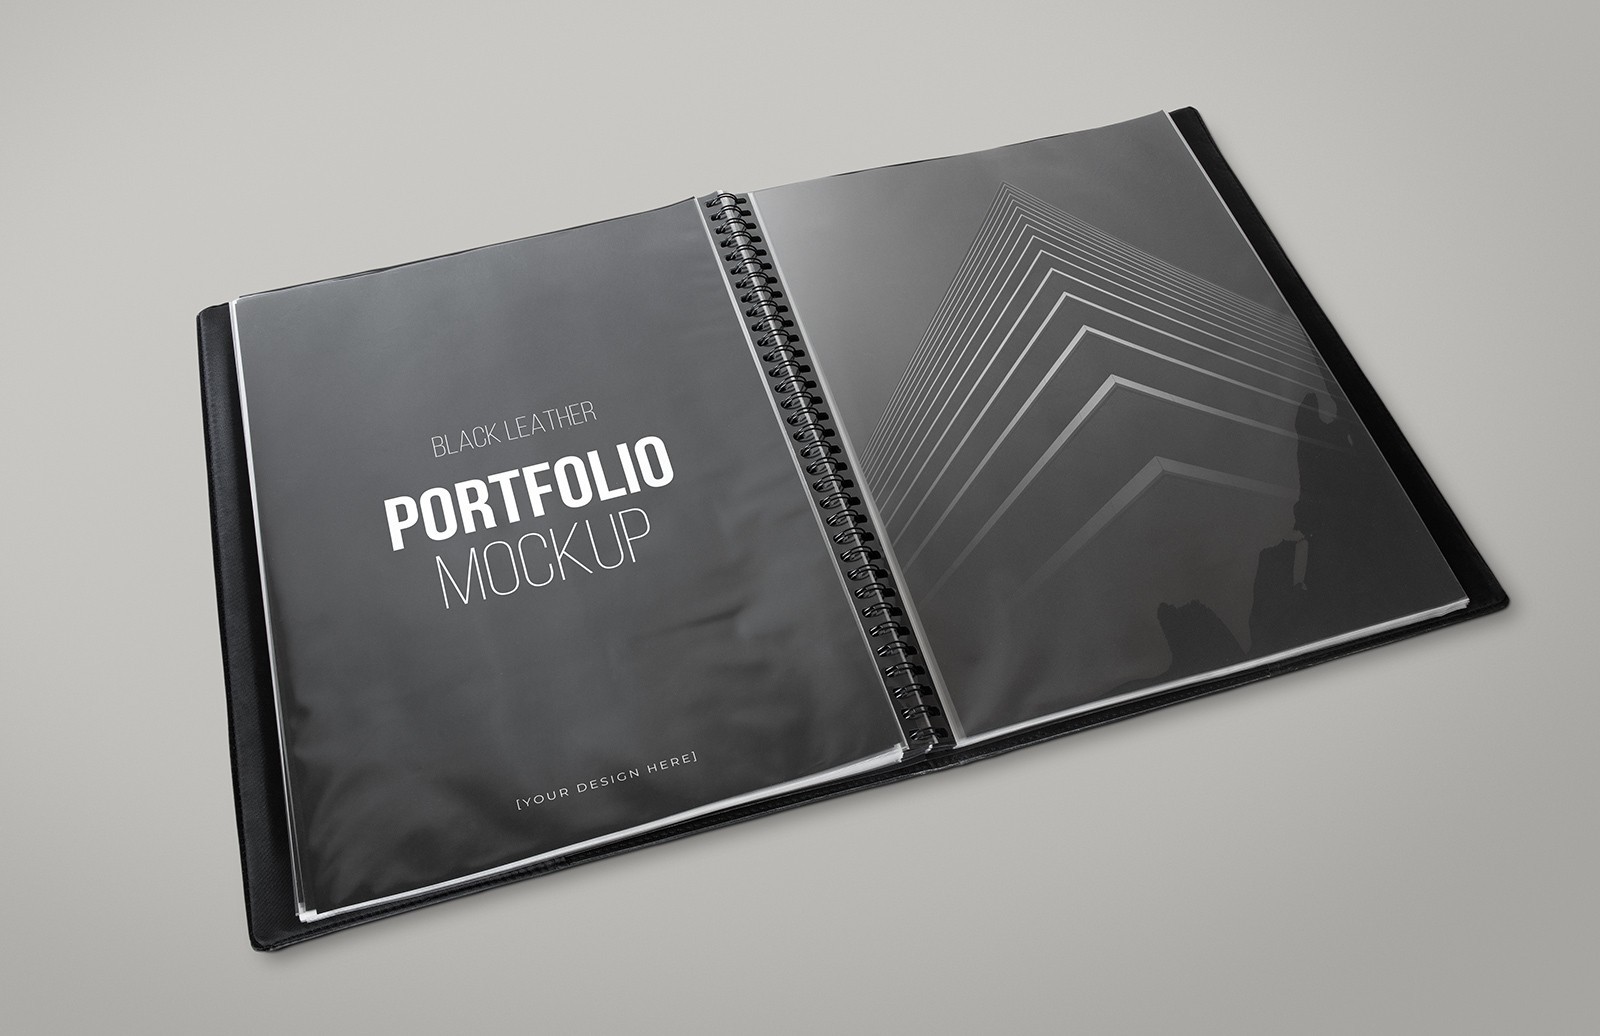 Black Leather Portfolio Mockup Preview 1